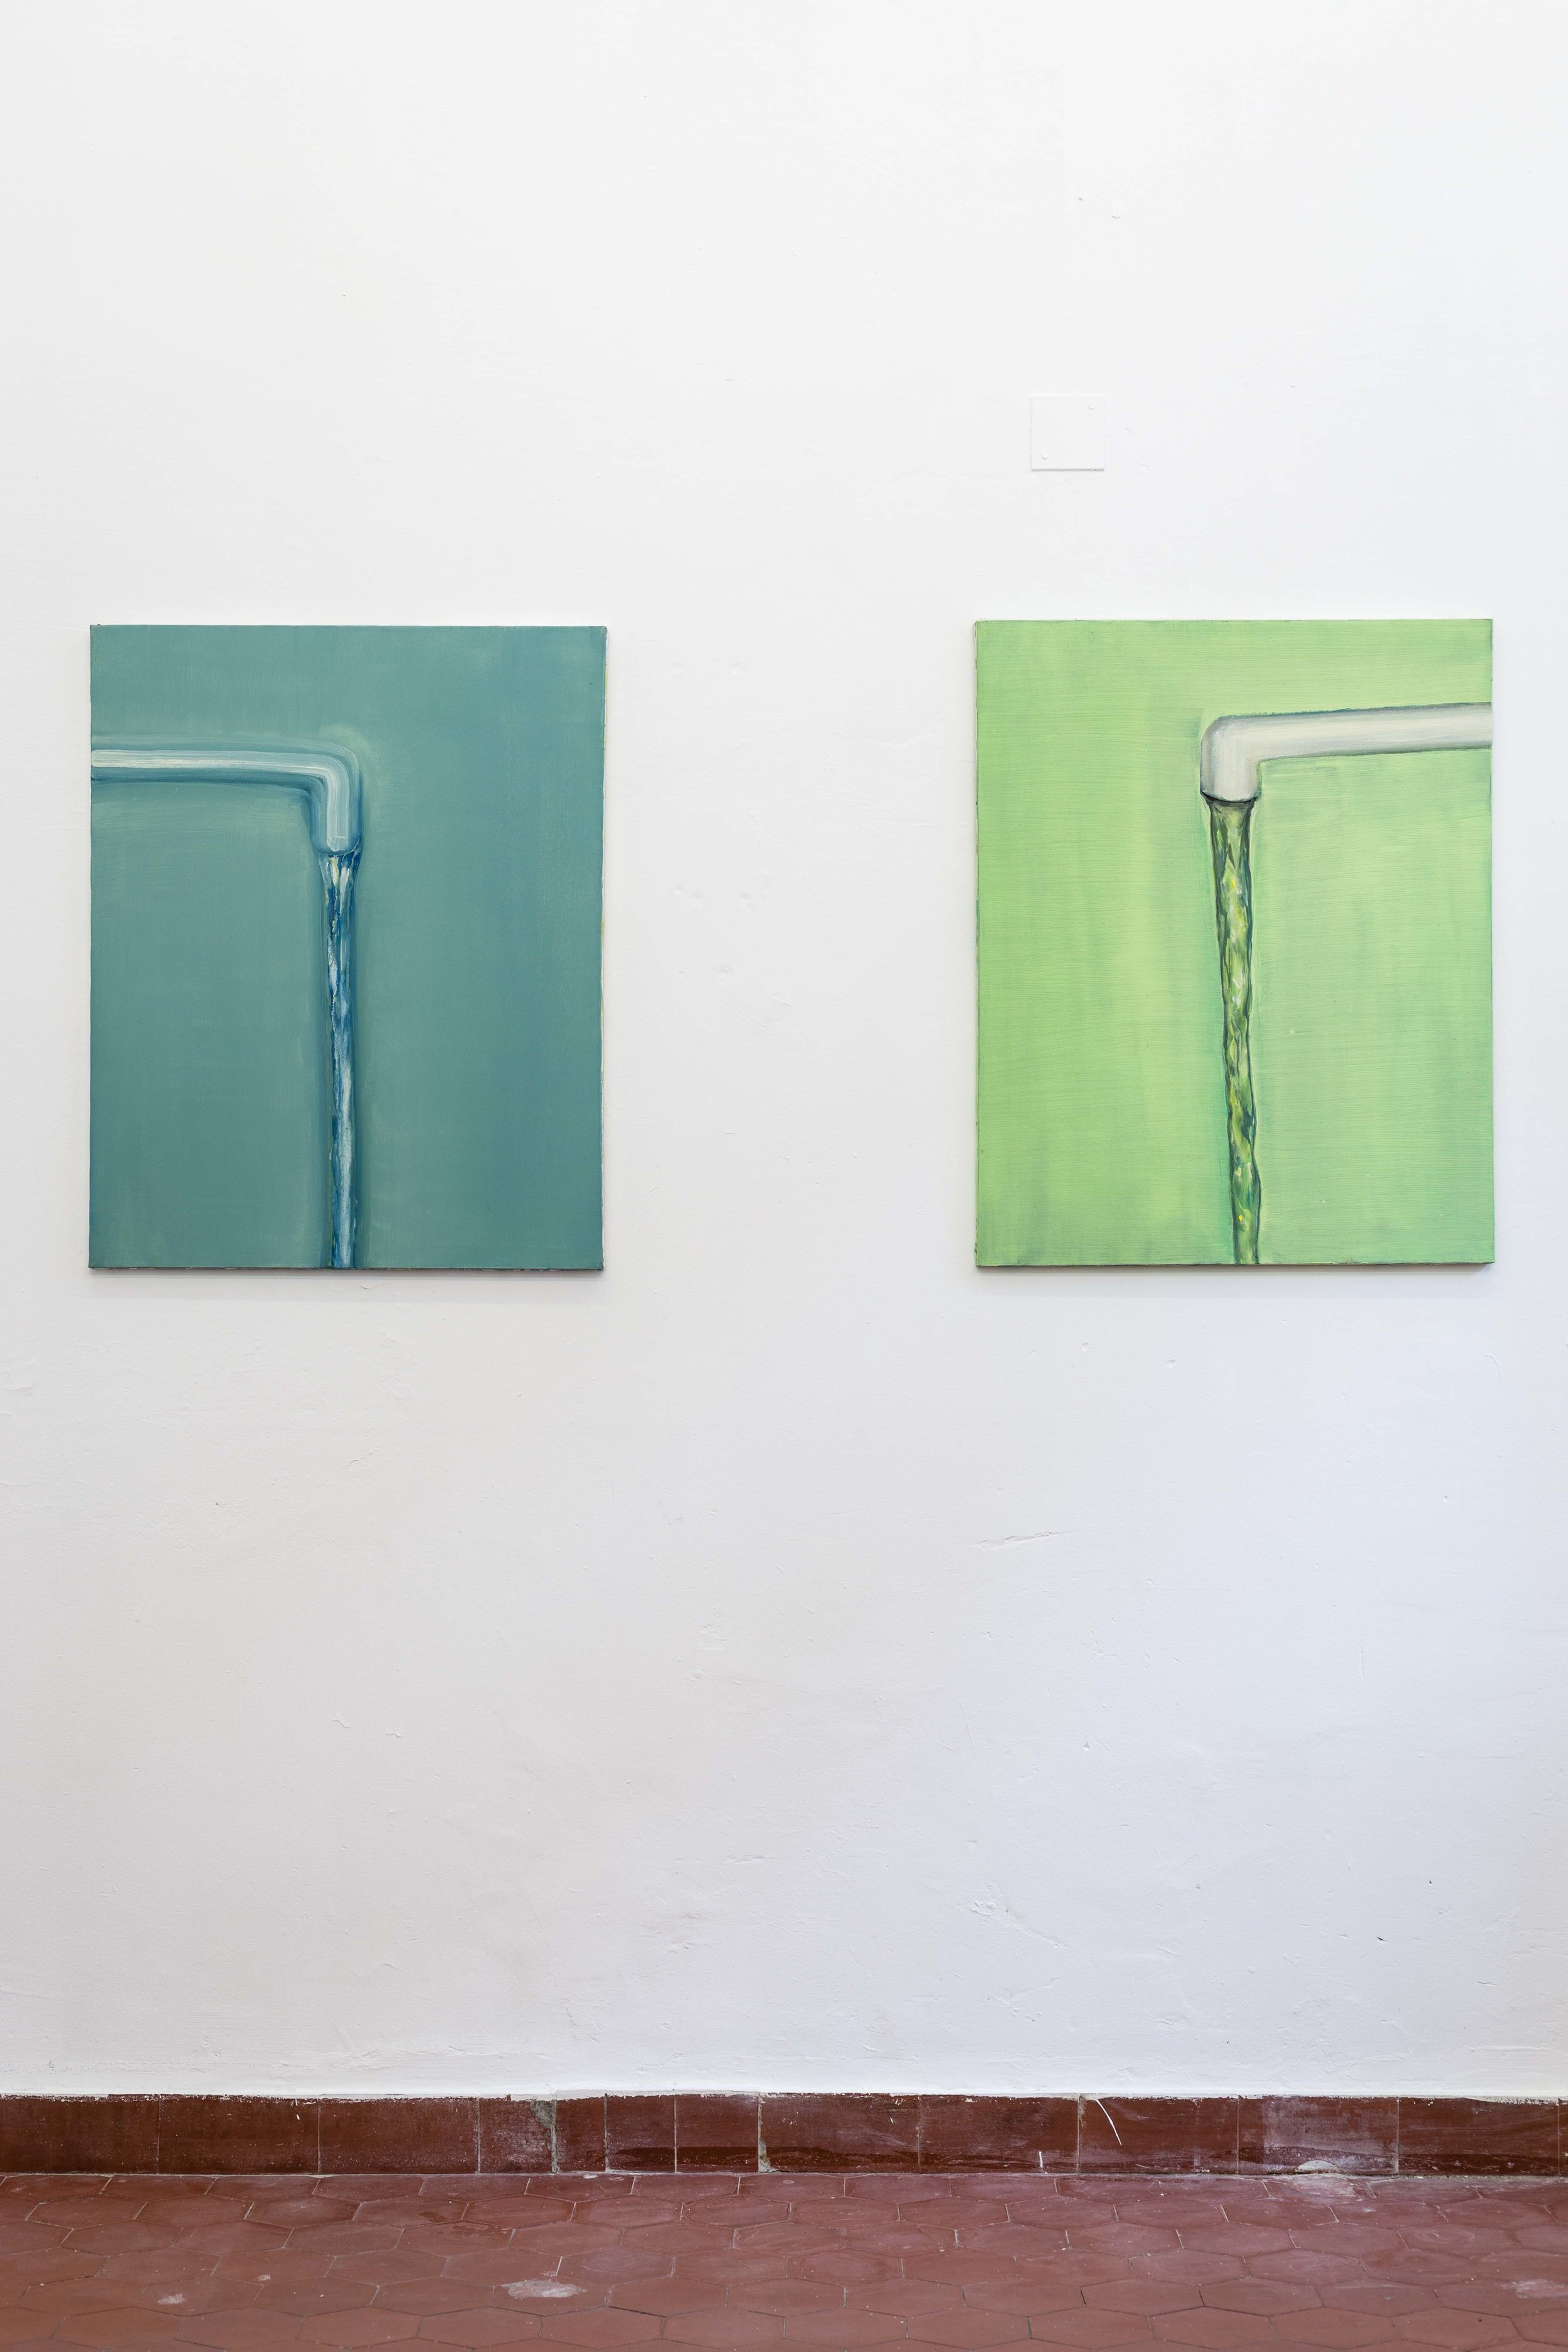 Left: Hans Witschi,  Untitled (Water) , 2000, oil on primed cotton, 76 x 61 cm; Hans Witschi,  Untitled (Water) , 2000, oil on primed cotton, 76 x 61 cm  Photo: Kilian Bannwart